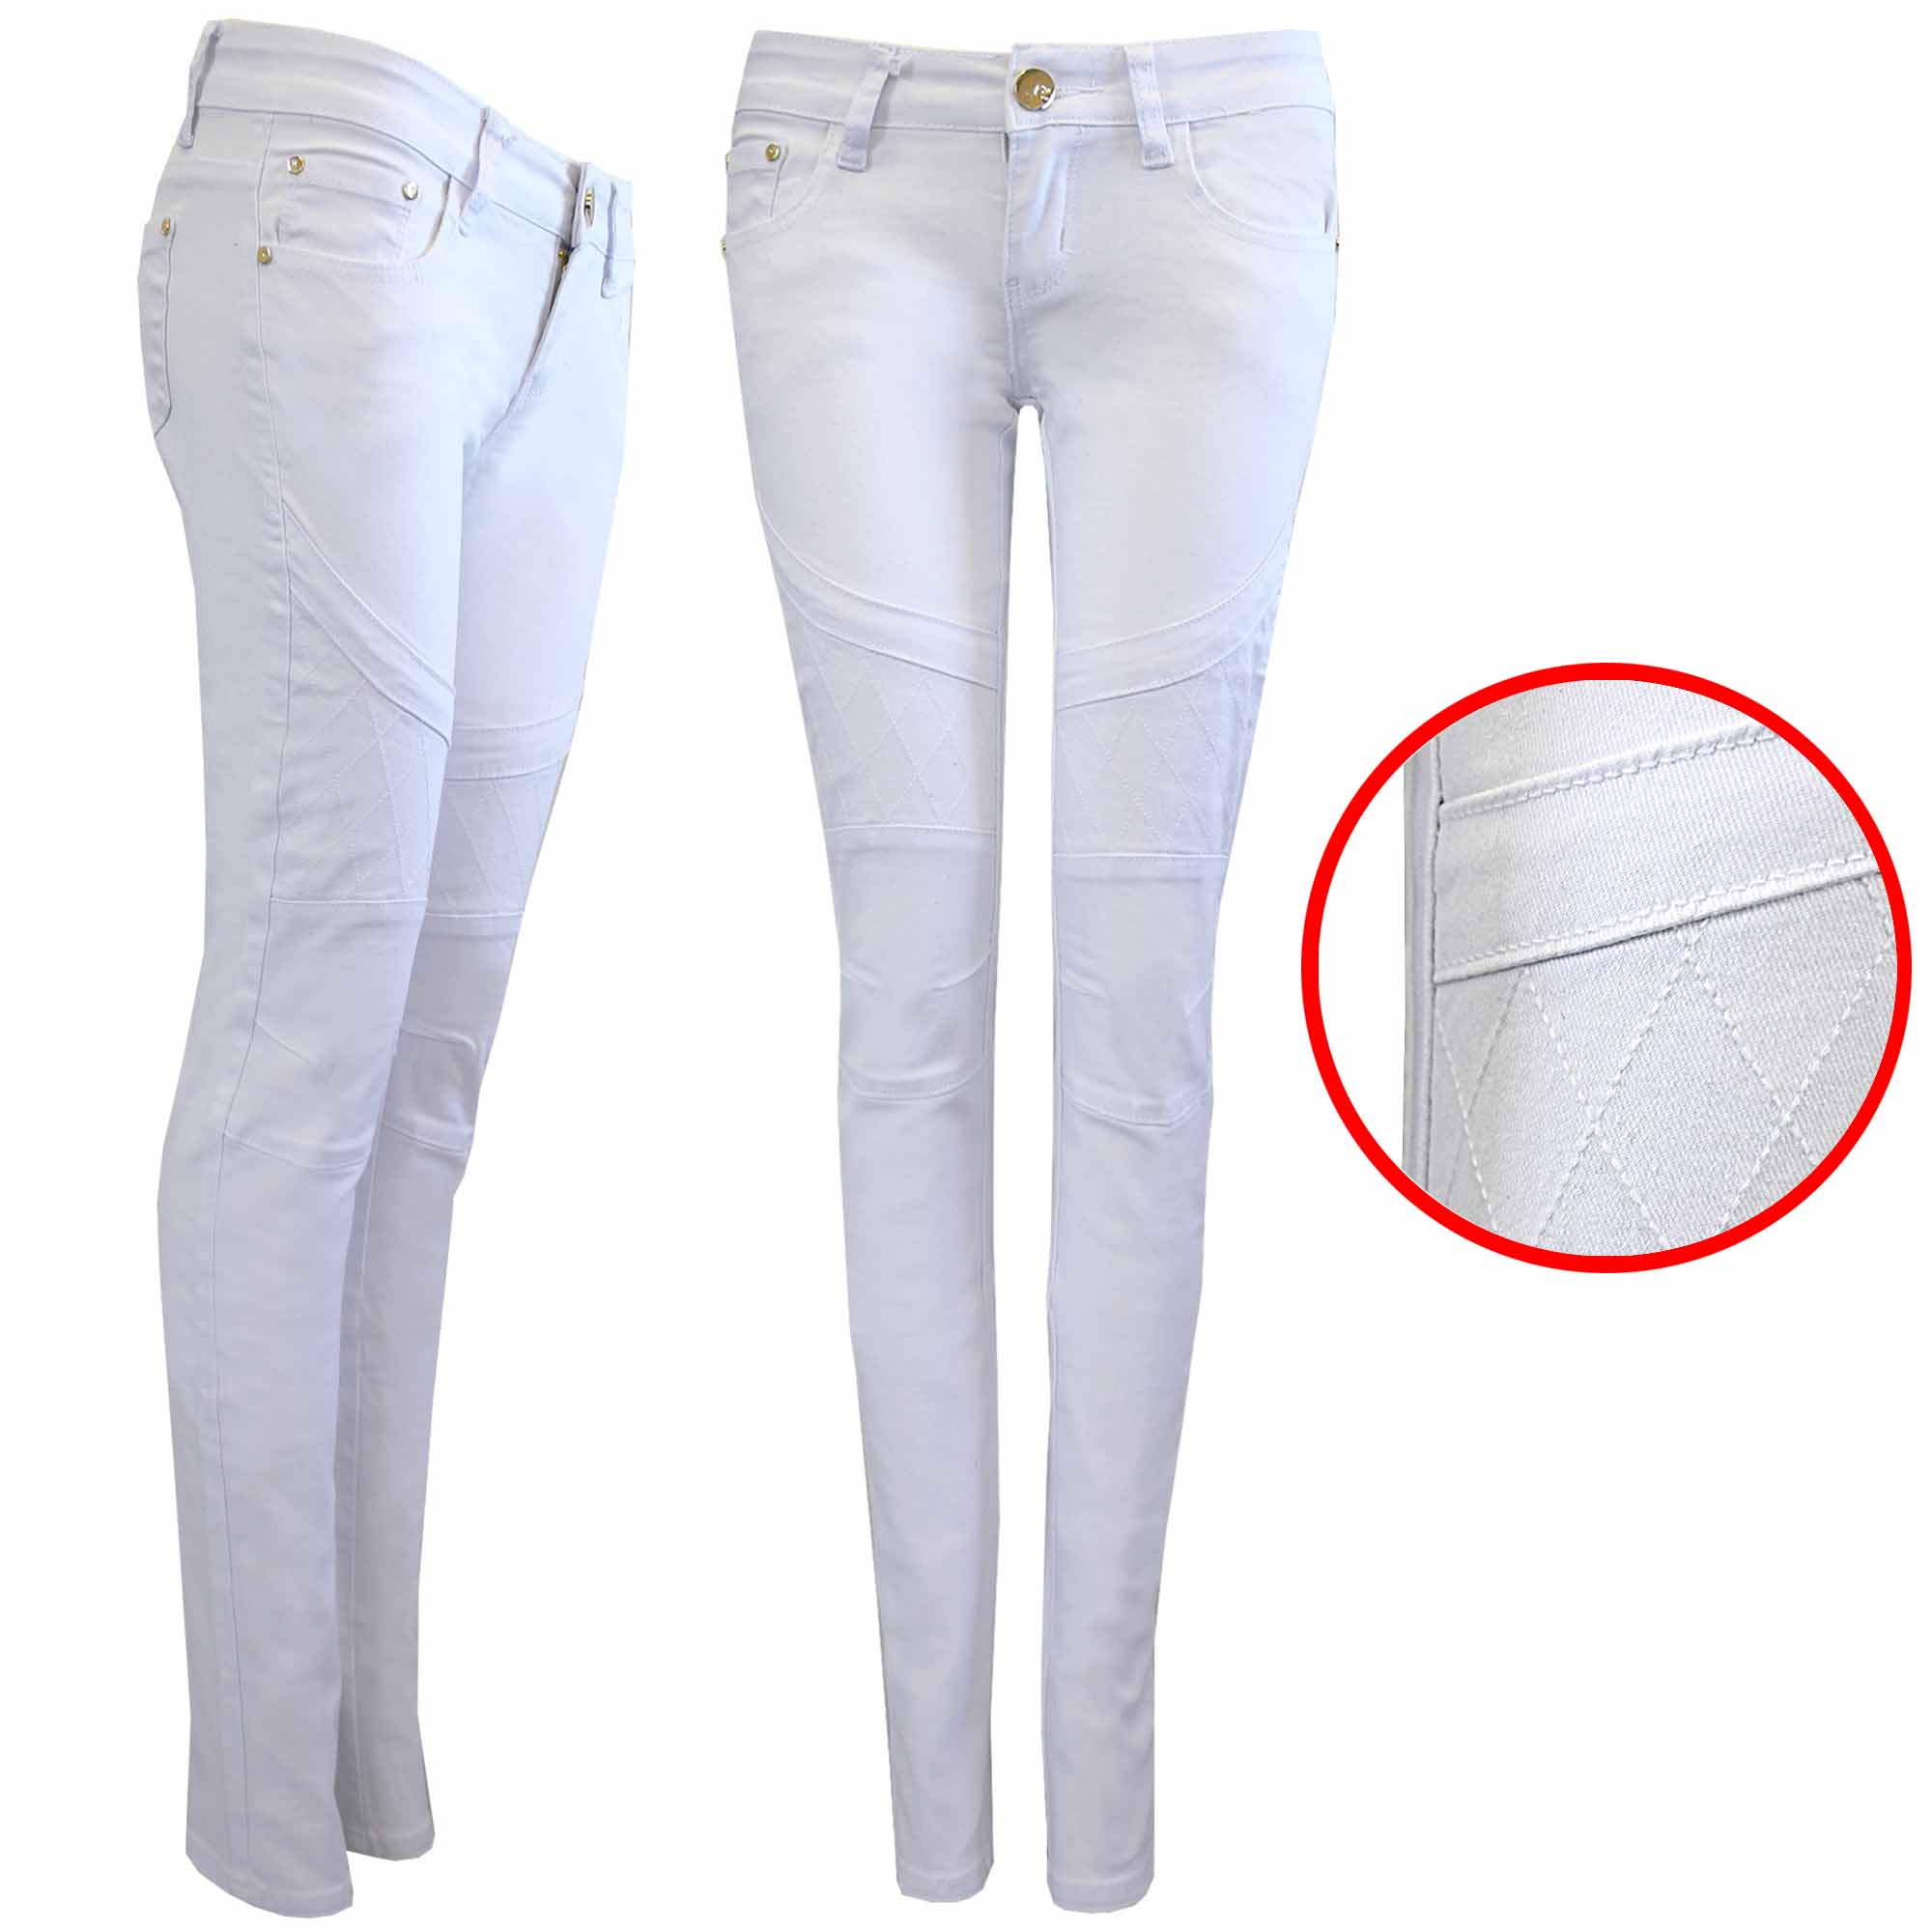 NEW WOMEN LADIES WHITE BIKER LOOK JEANS SKINNY LEG STRETCH DENIM ...